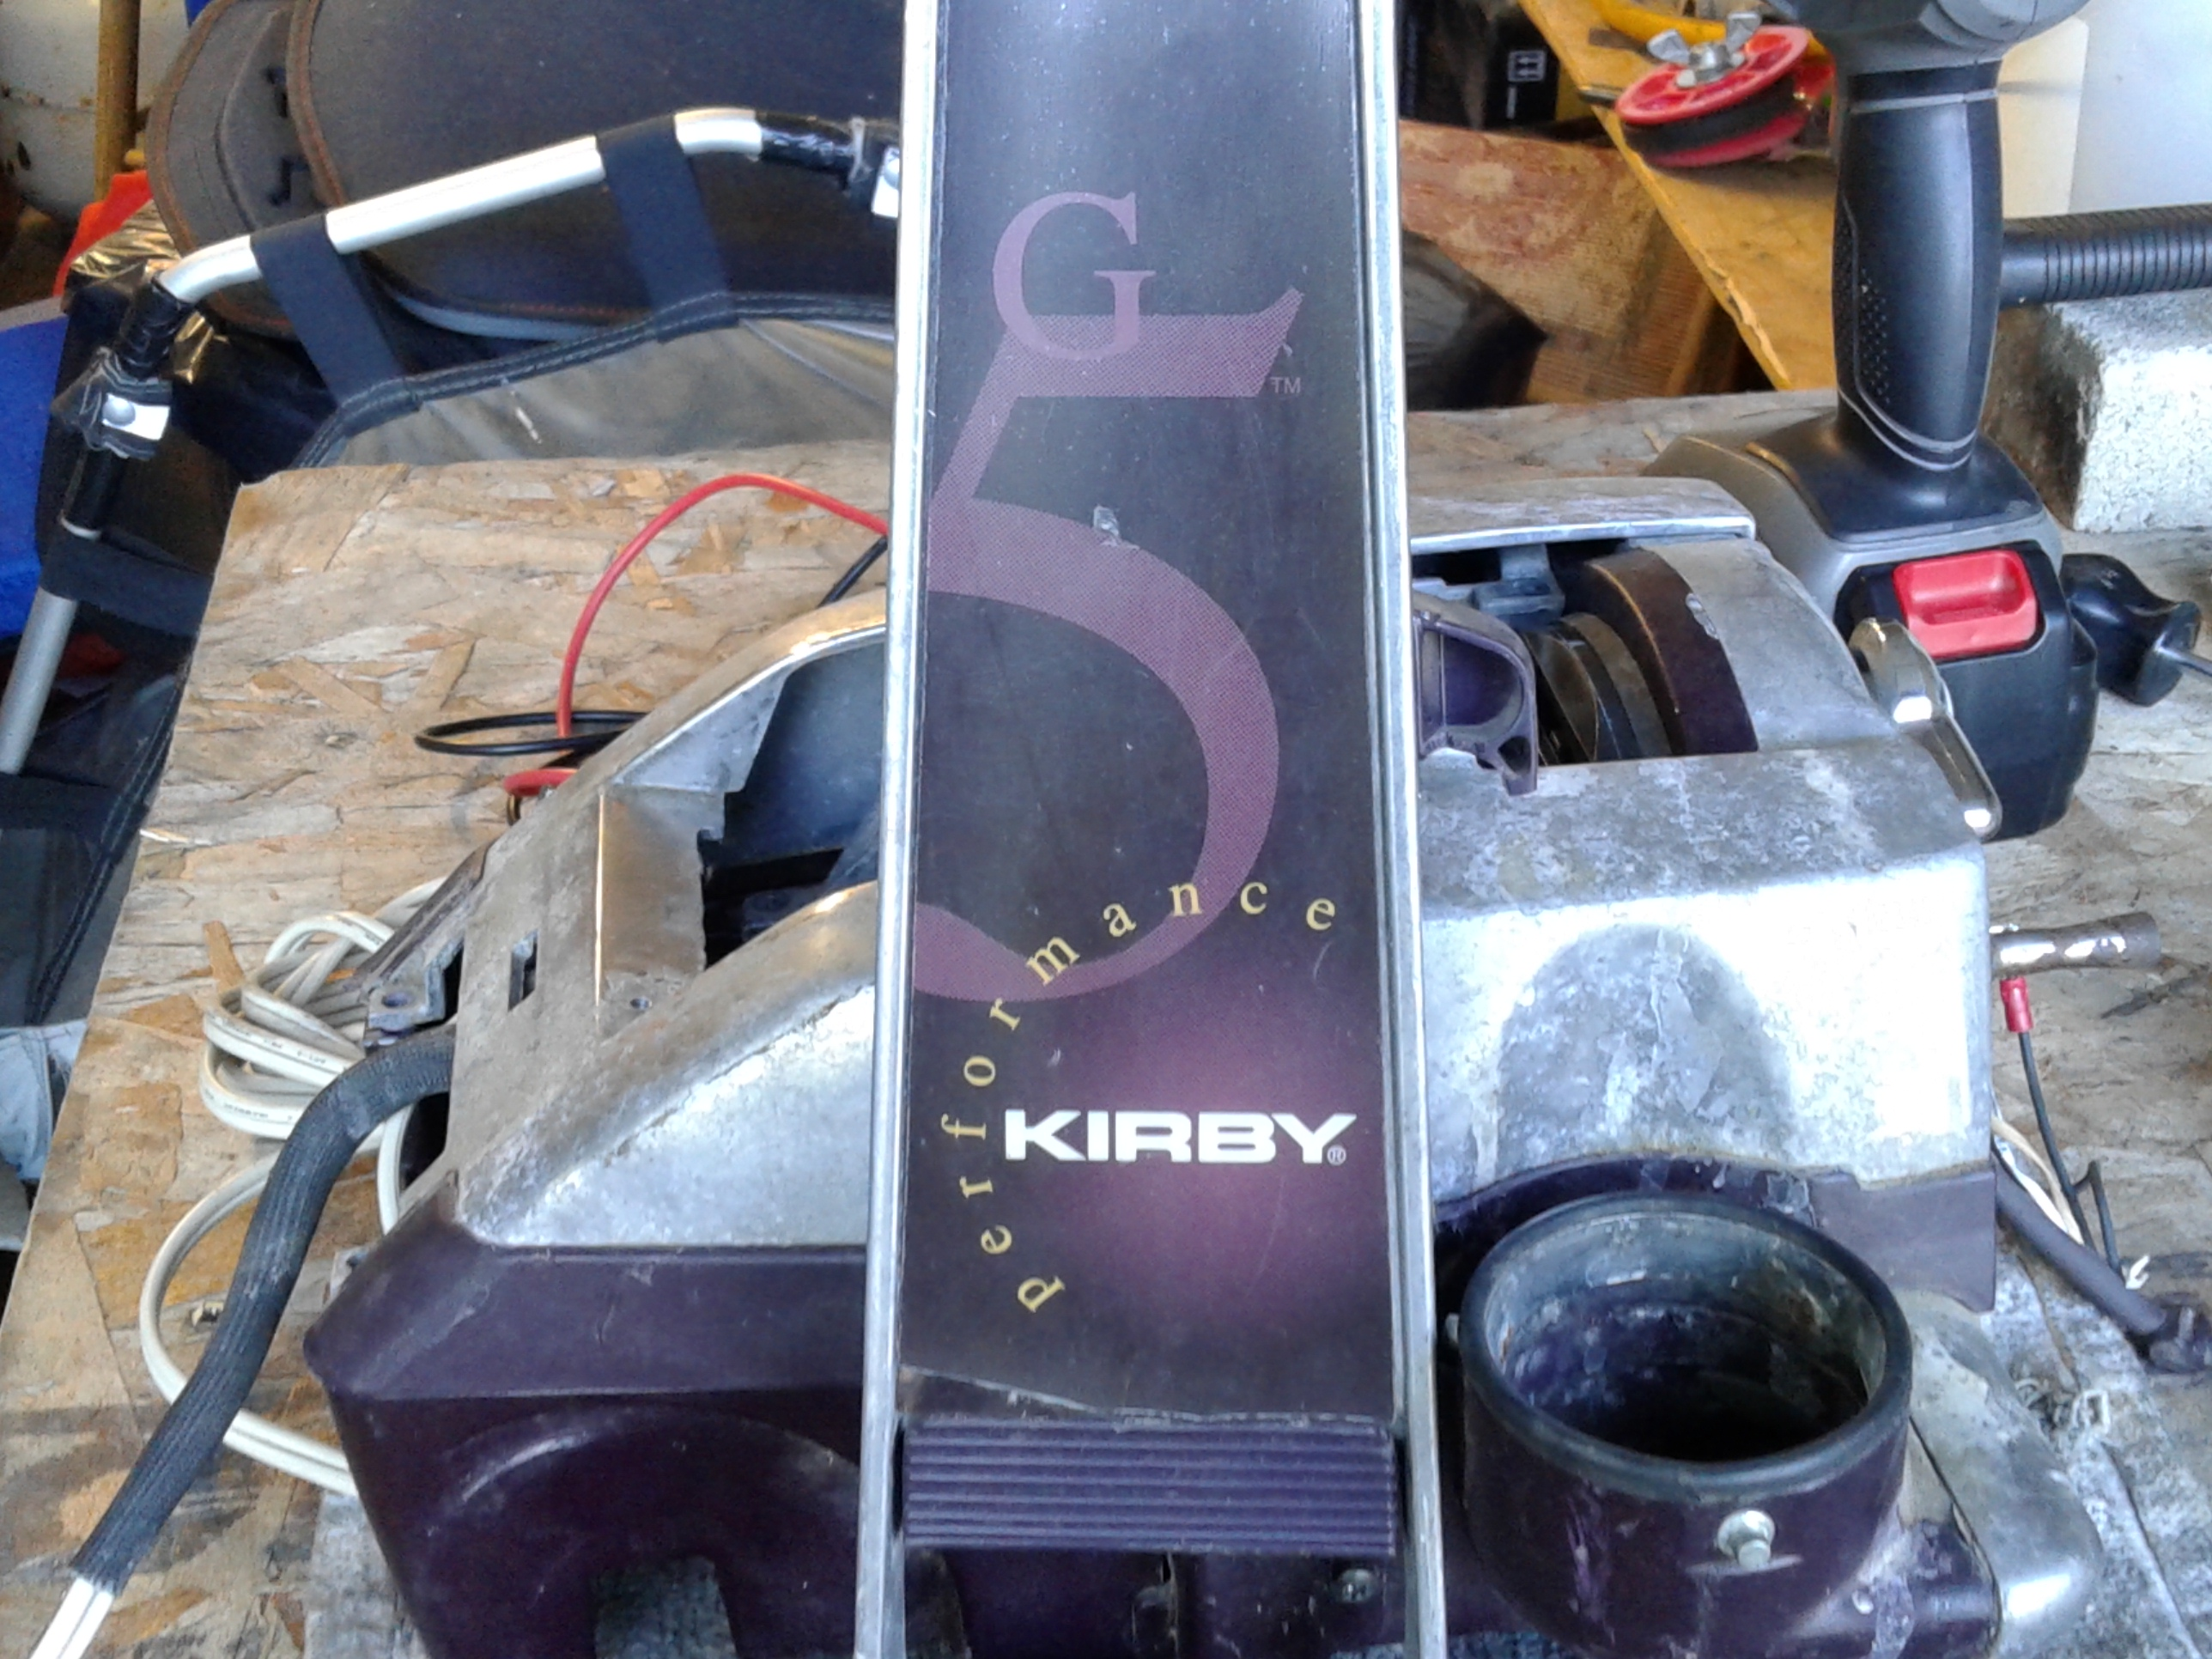 The Kirby Vacuum To Blower Conversion - Projects - Drive On ... on motor connections diagram, motor controller diagram, circuit diagram, motor output curve, electrical motor diagram, motor control diagram, motor overload relay diagram, 12 lead motor diagram, motor engine diagram, motor components diagram, motor parts diagram, 9 wire motor diagram, motor guide, motor oil diagram, craftsman table saw diagram, idec relays diagram, block diagram, ge 469 multilin menu diagram, electric motor diagram, motor data sheet,